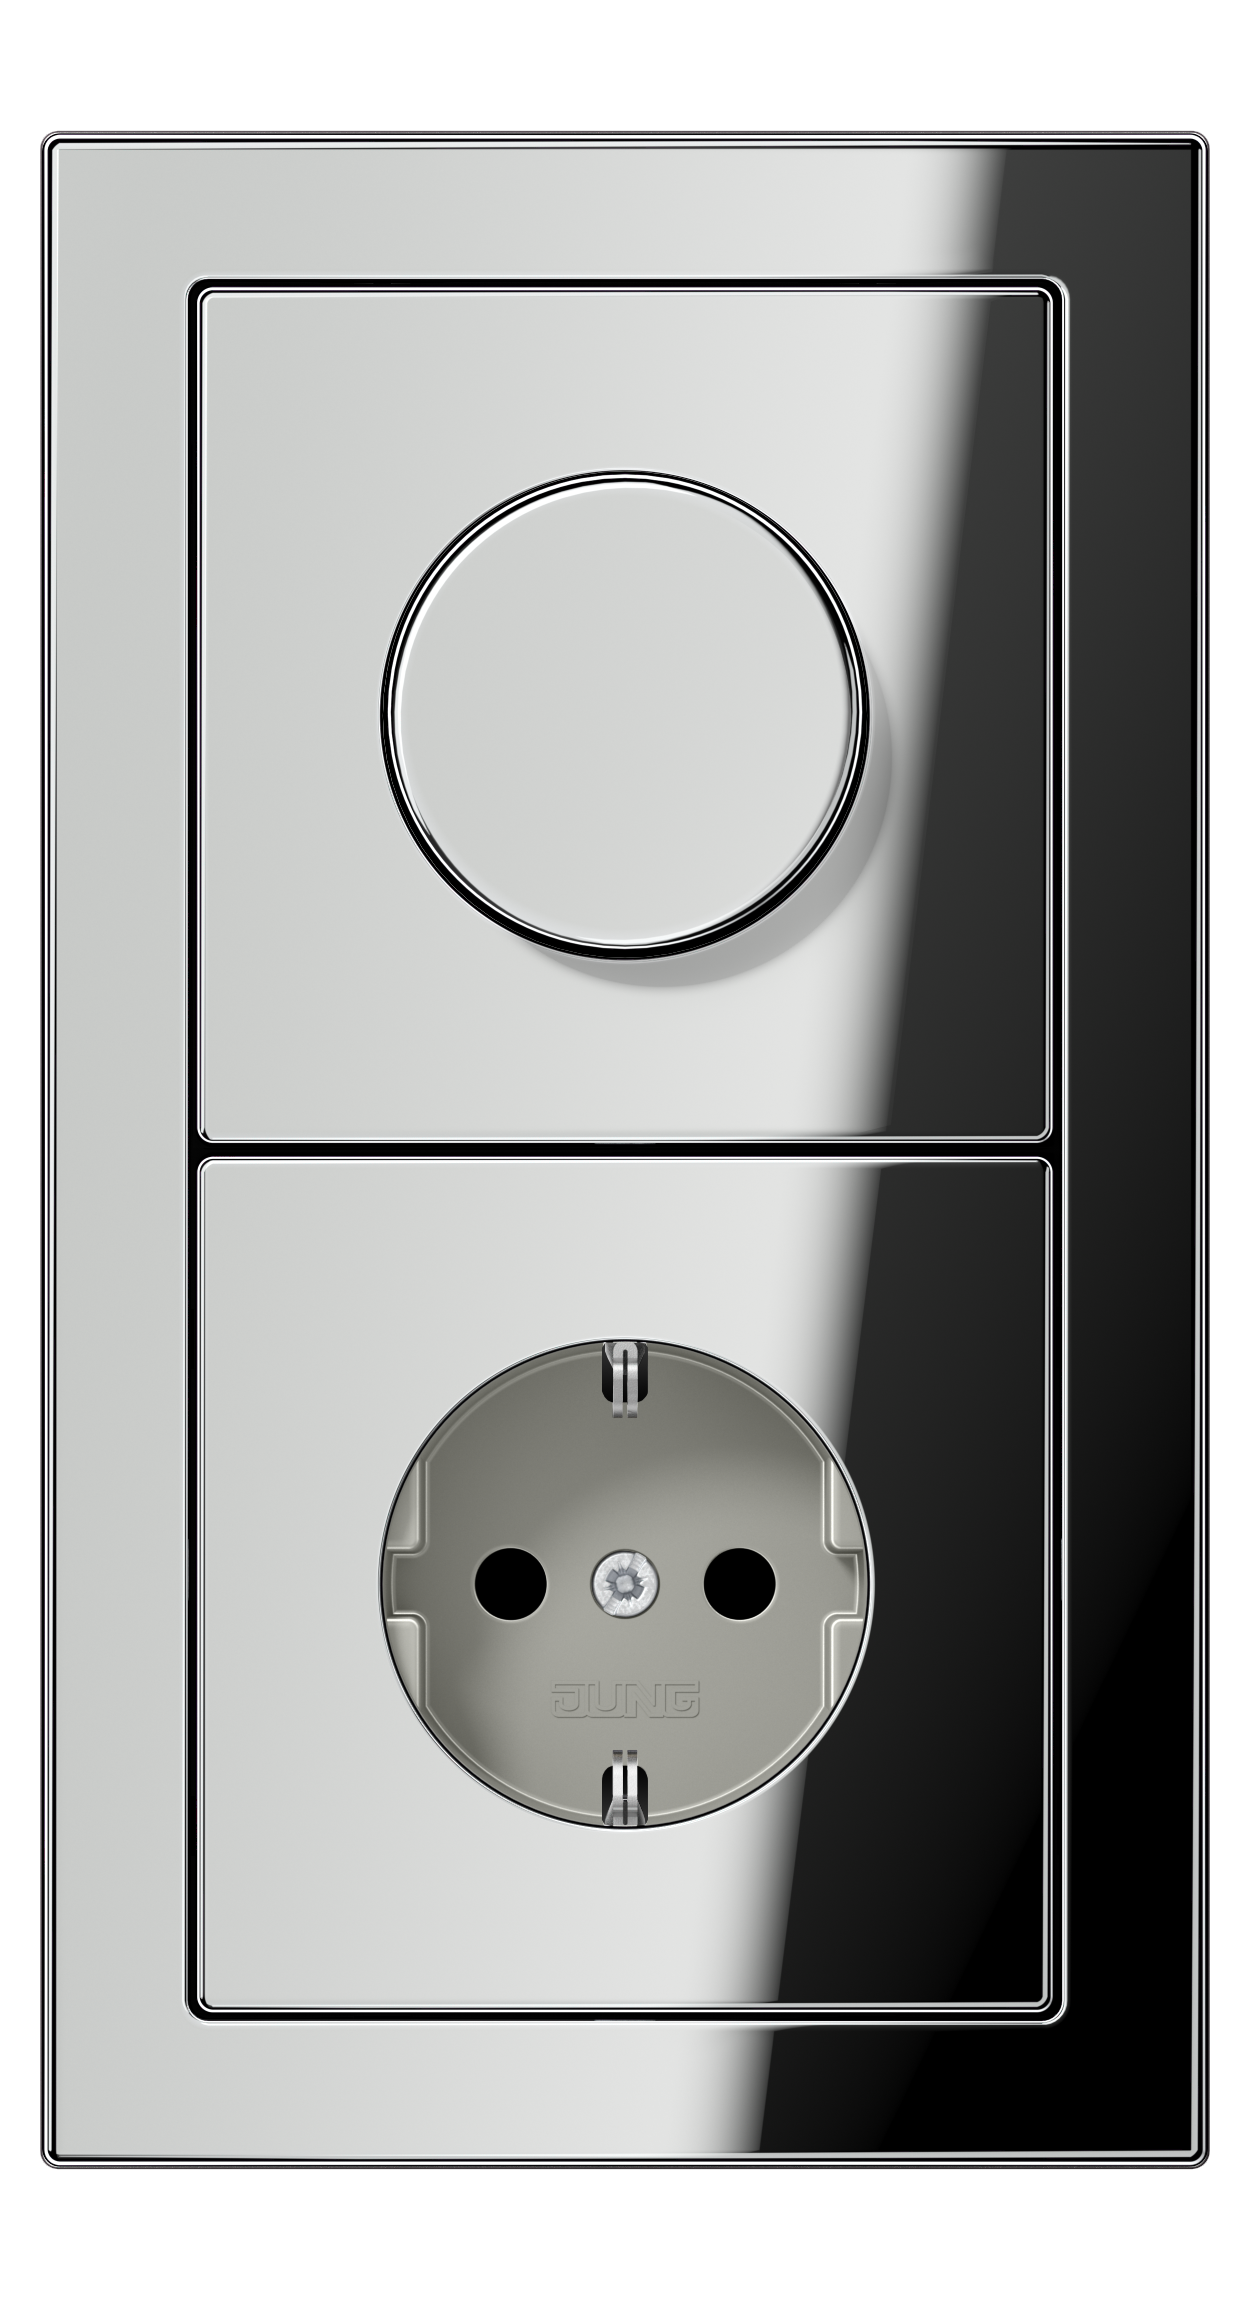 JUNG_LS_Design_chrome_dimmer-socket